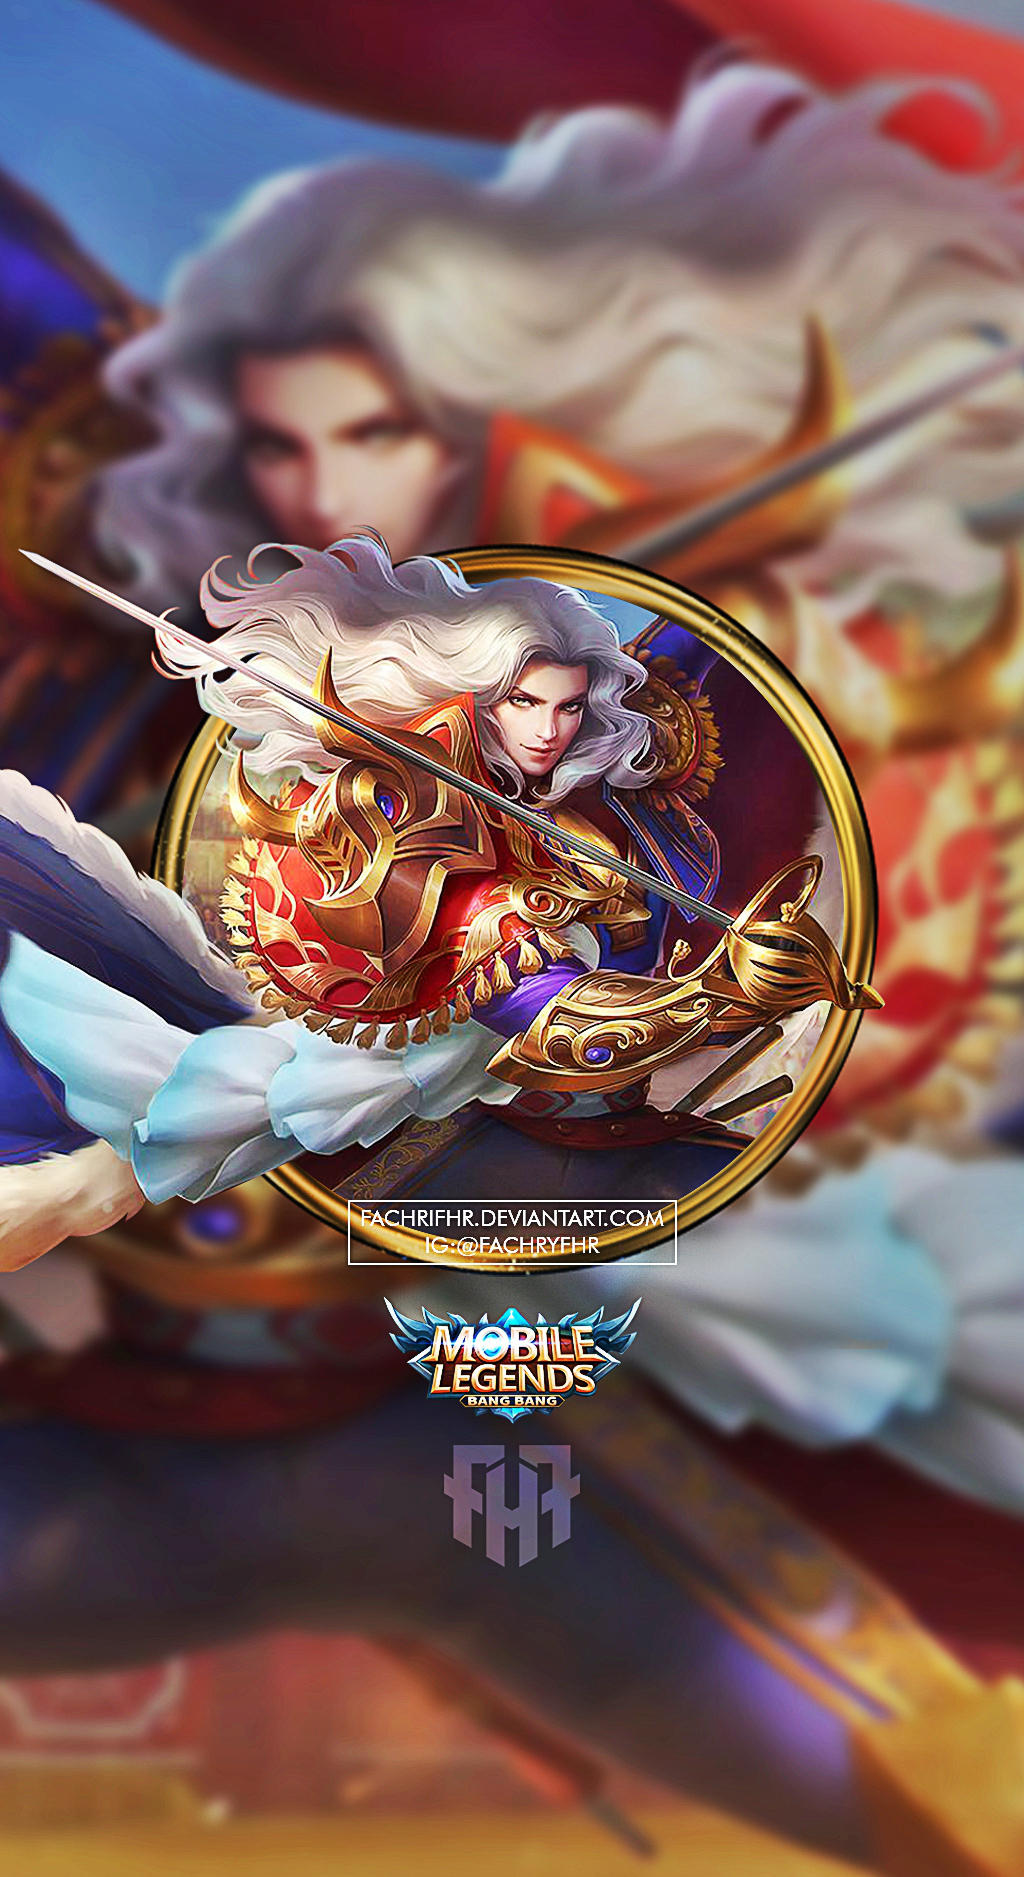 Wallpaper 3d Bergerak Mobile Legend